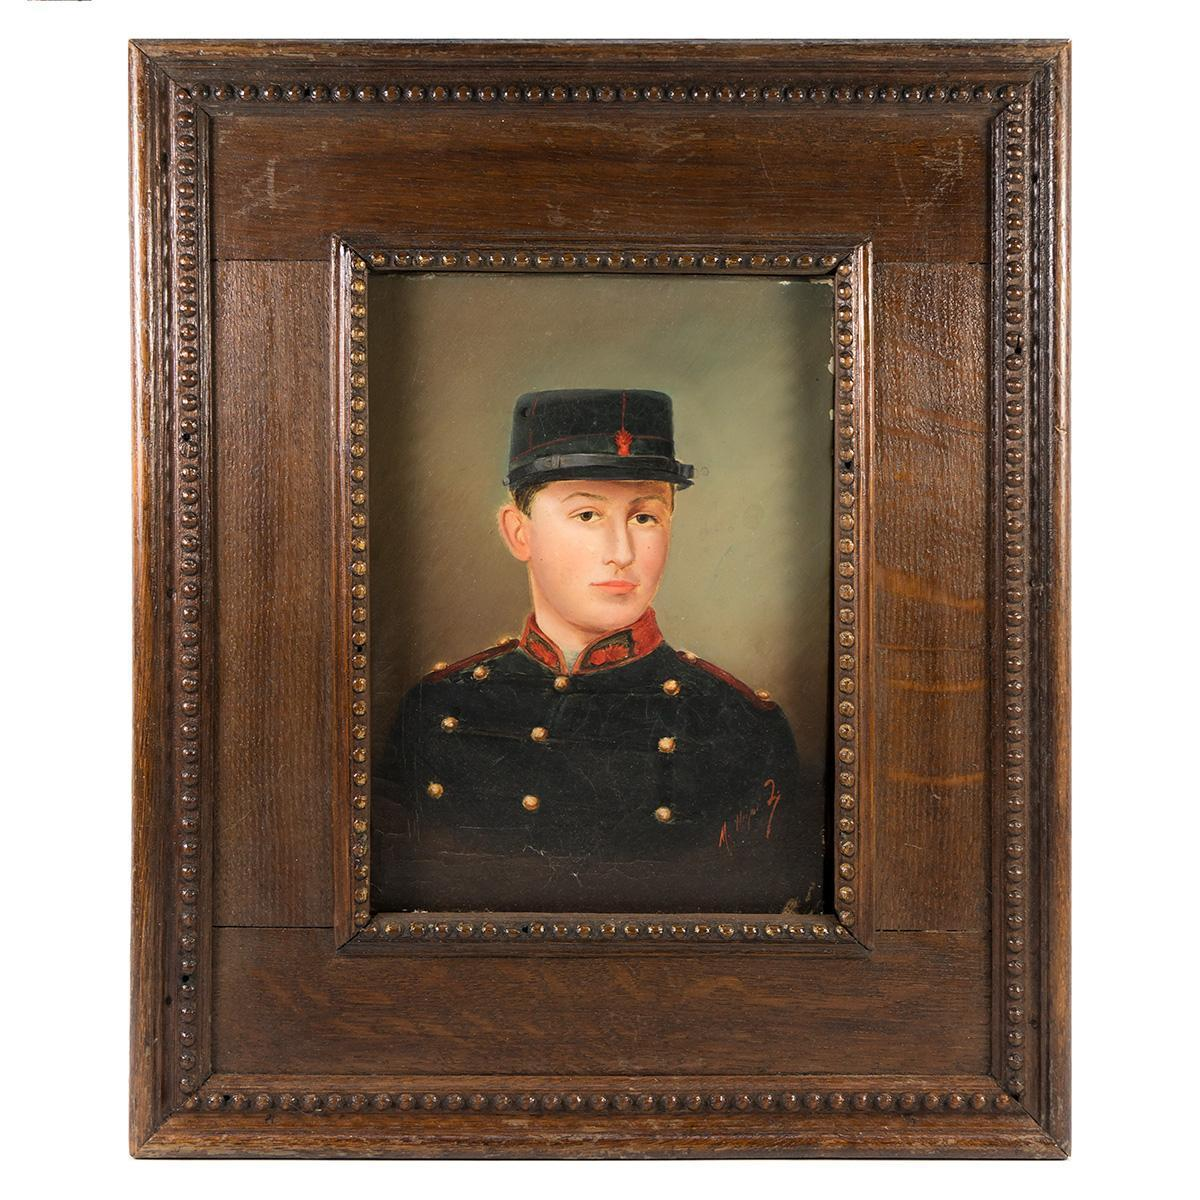 Antique French Oil Painting, Portrait of a Young WWI Soldier, Military, in Frame